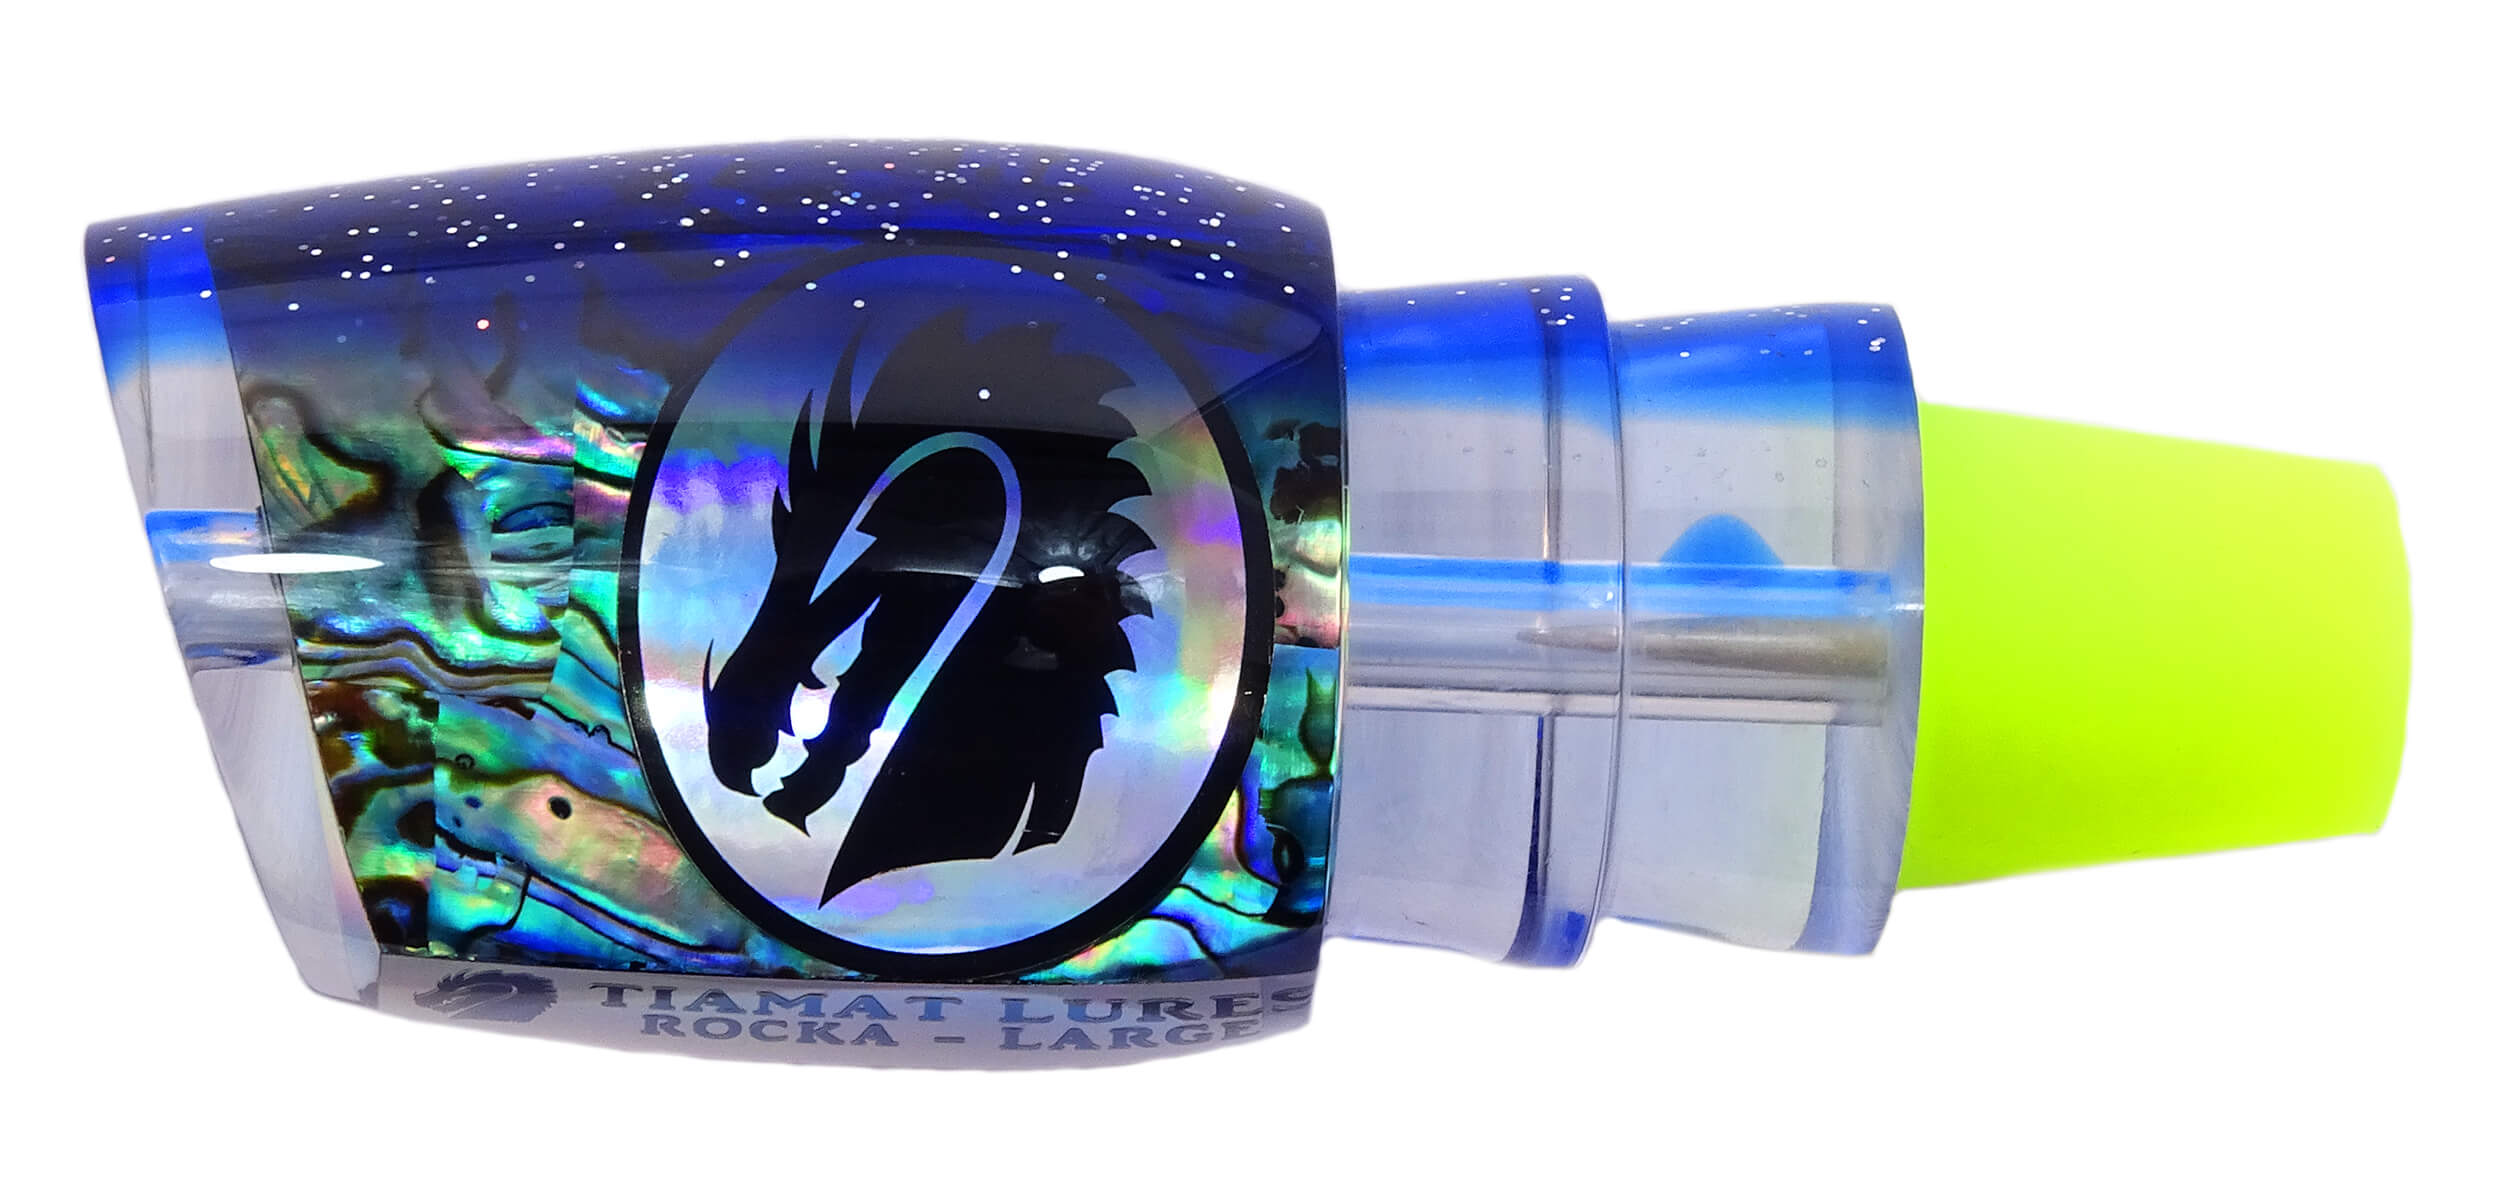 Tiamat Lures - Rocka Series - Head - New Zealand Paua Shell with Sparkled Blue Top Tint